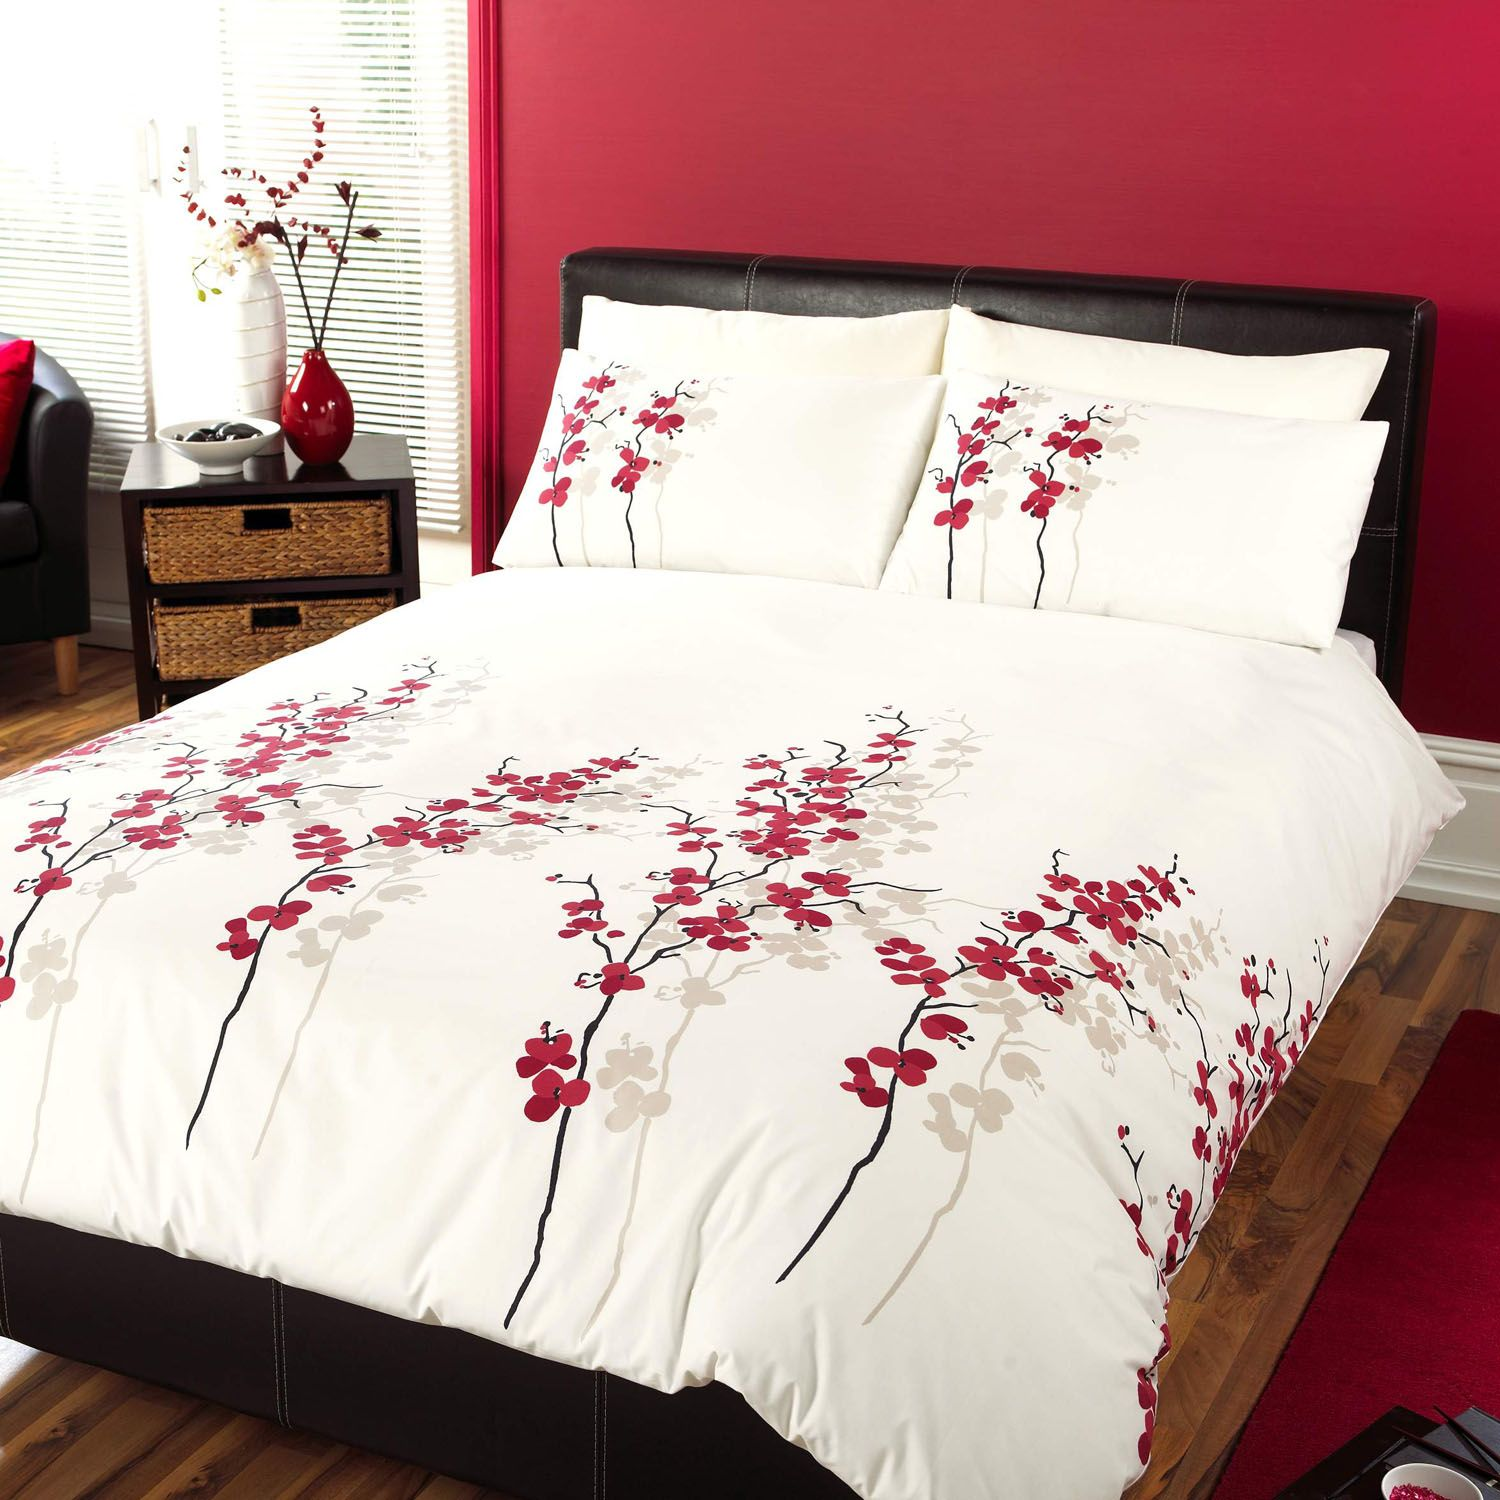 White and red bed sheets - Details About Oriental Bedding Set Duvet Cover Pillowcases Asian Floral Design White